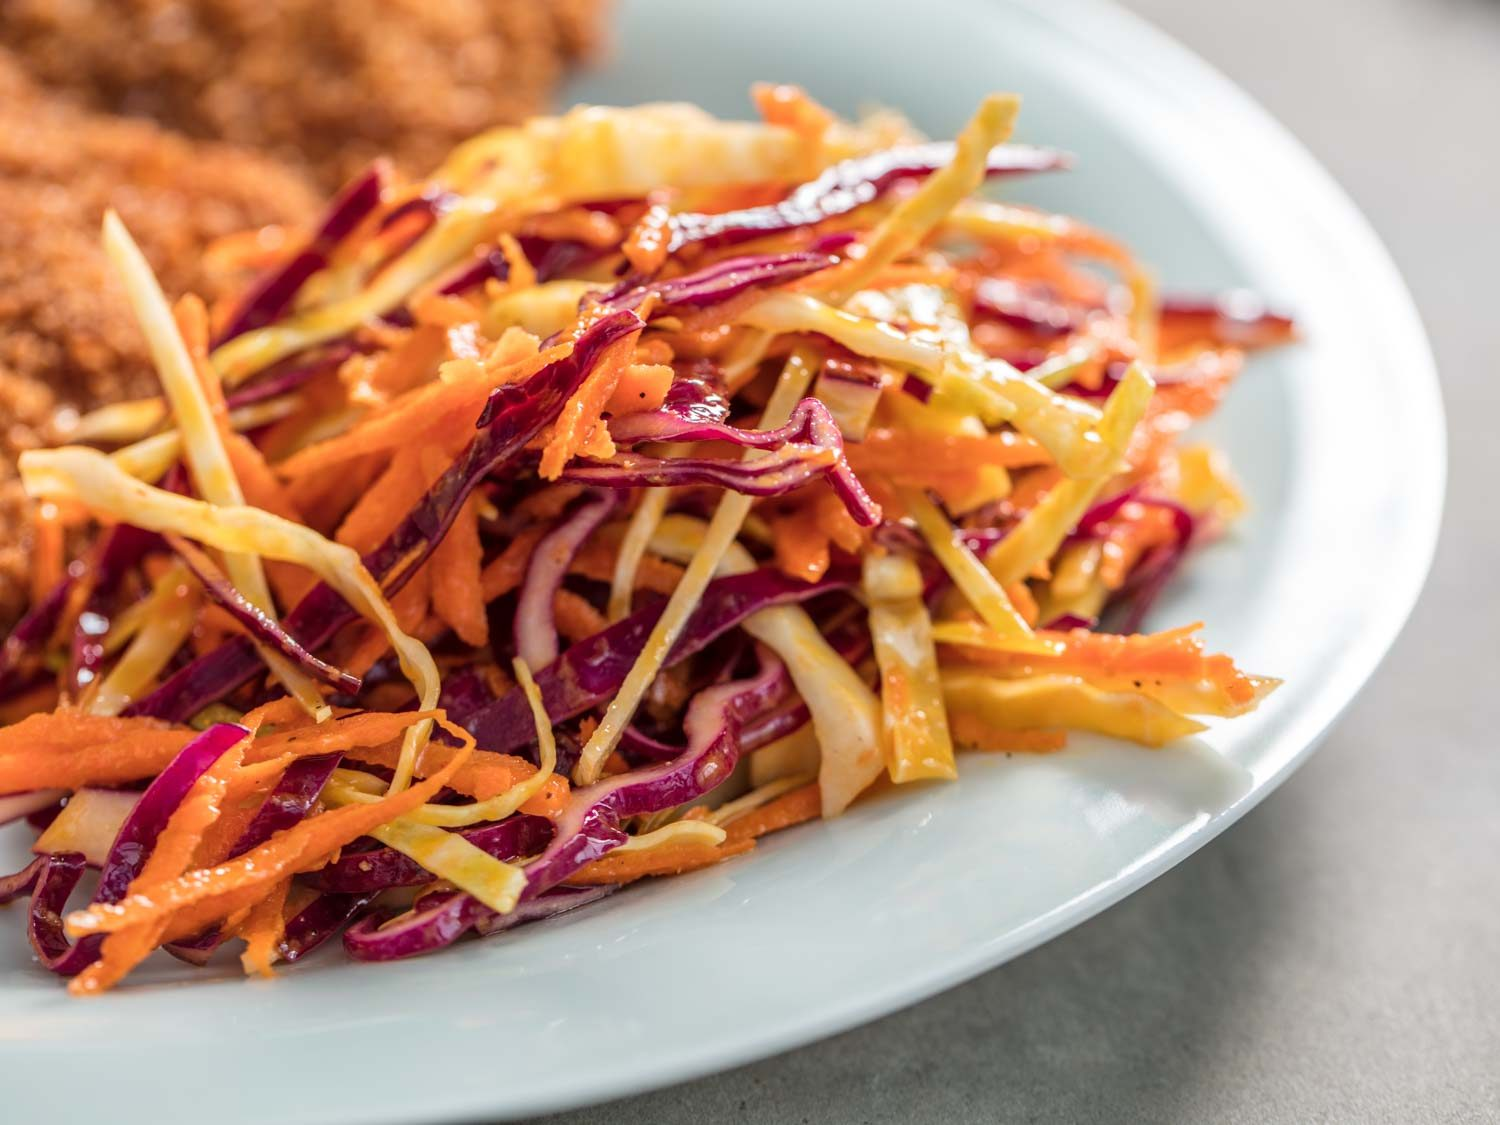 Coleslaw With Creamy Chili Vinaigrette